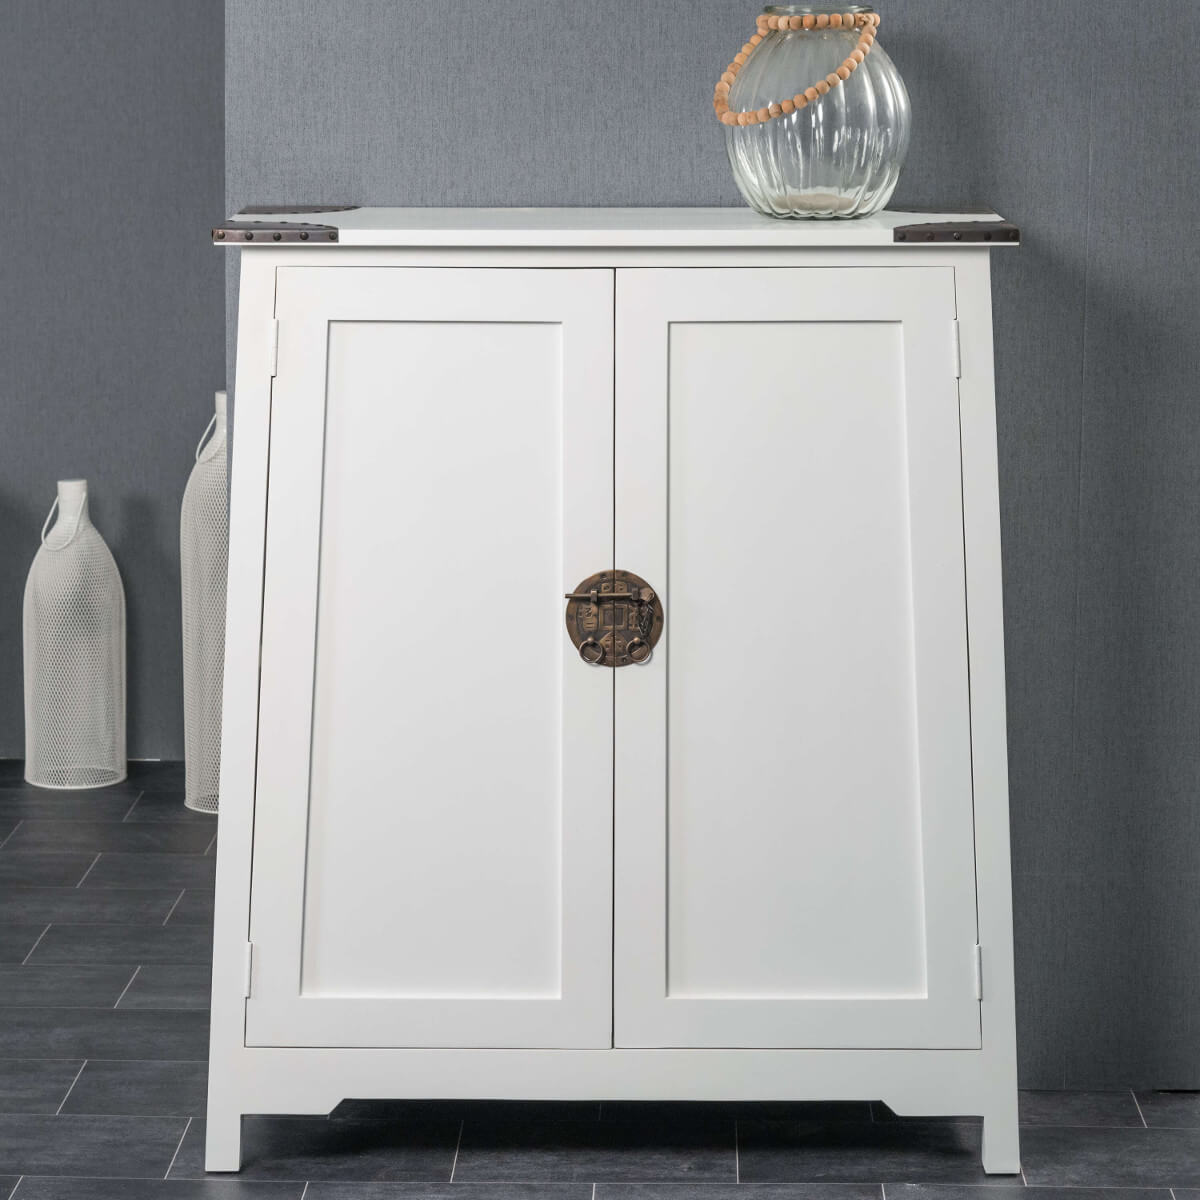 Bahut De Salon En Bois D Acajou Massif Thao Rectangle Blanc L  # Meuble Blanc Acajou